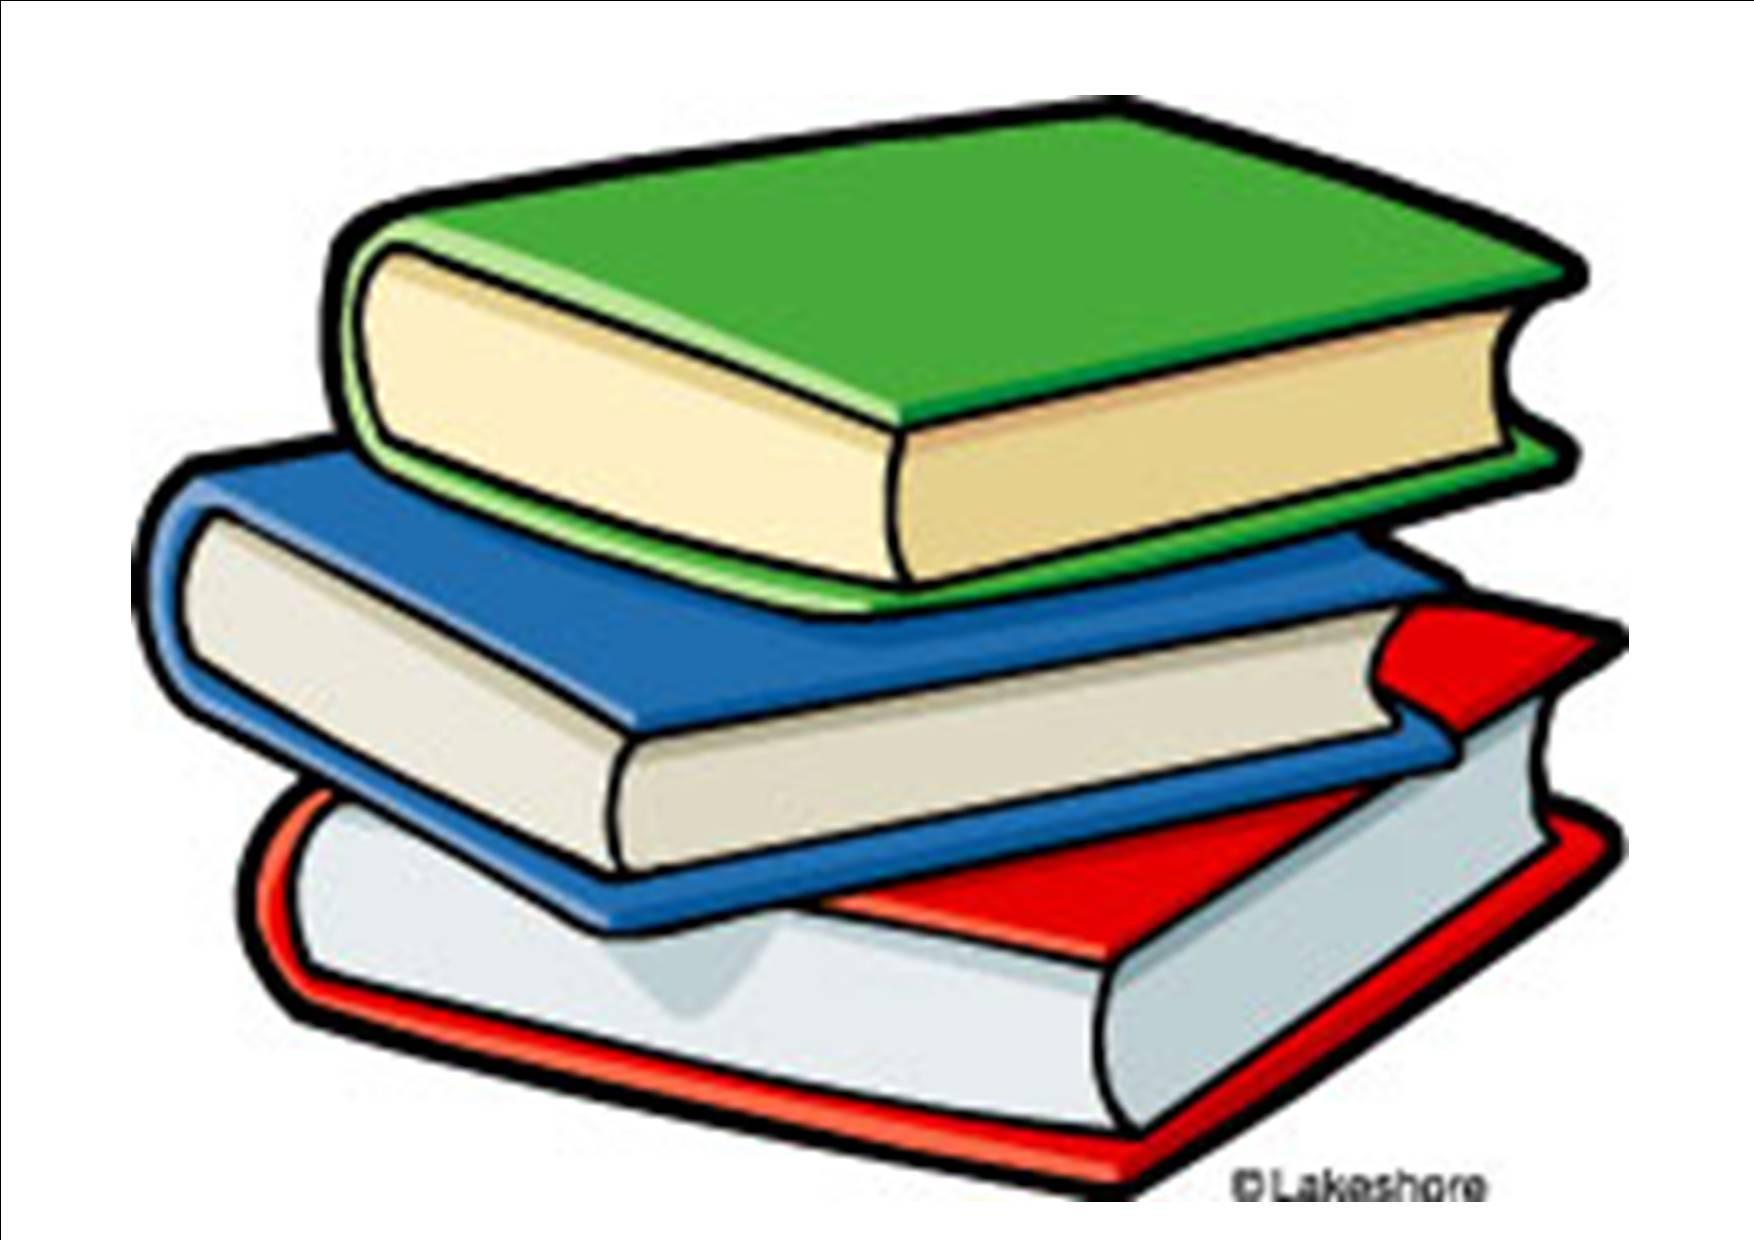 Book Clip Art: 10 reading boo - Book Clipart